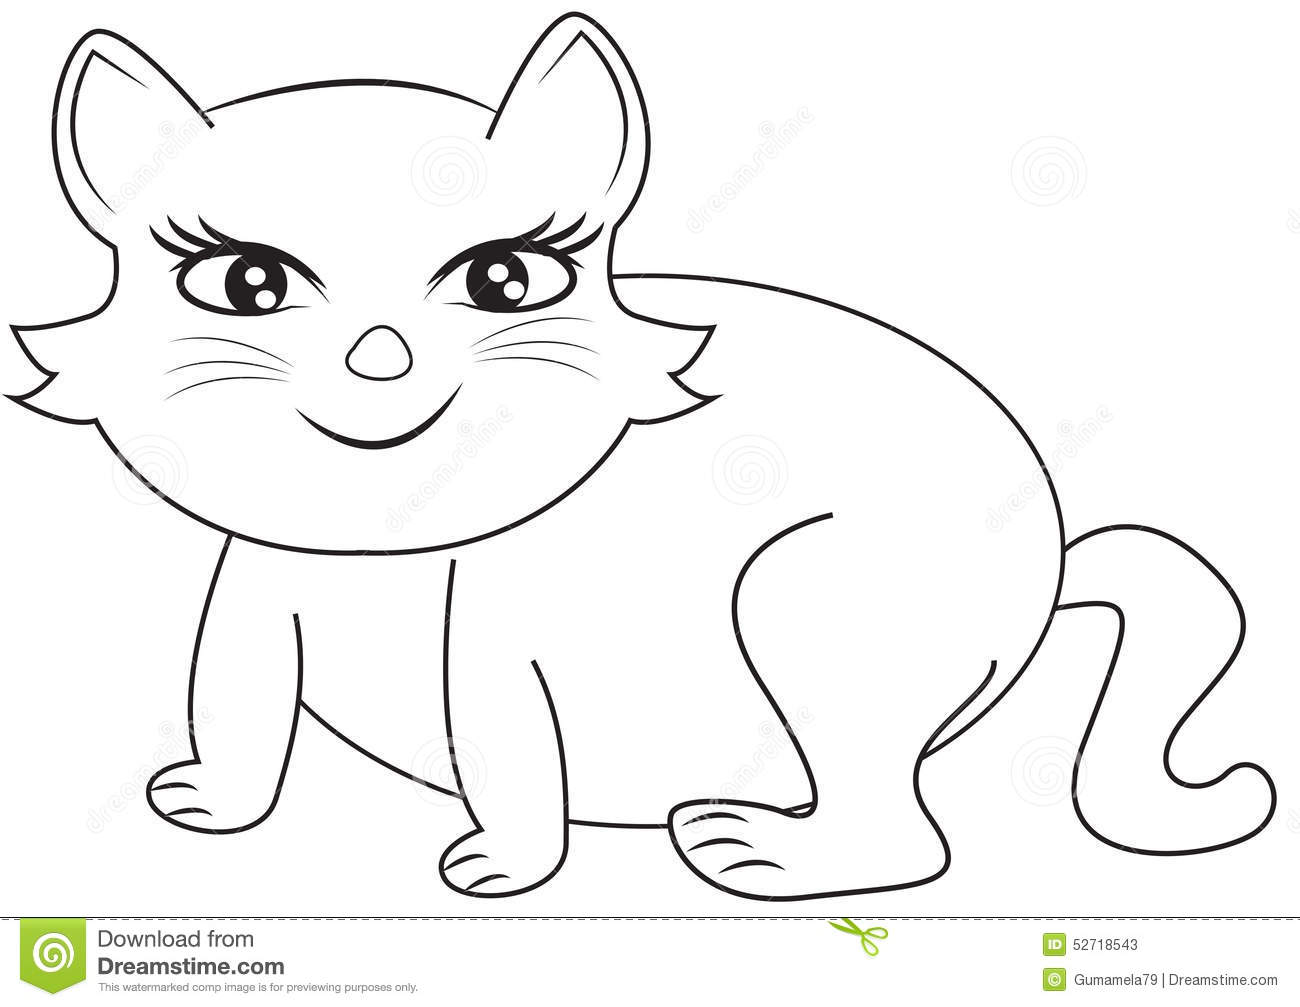 smiling cat coloring page stock illustration image 52718543